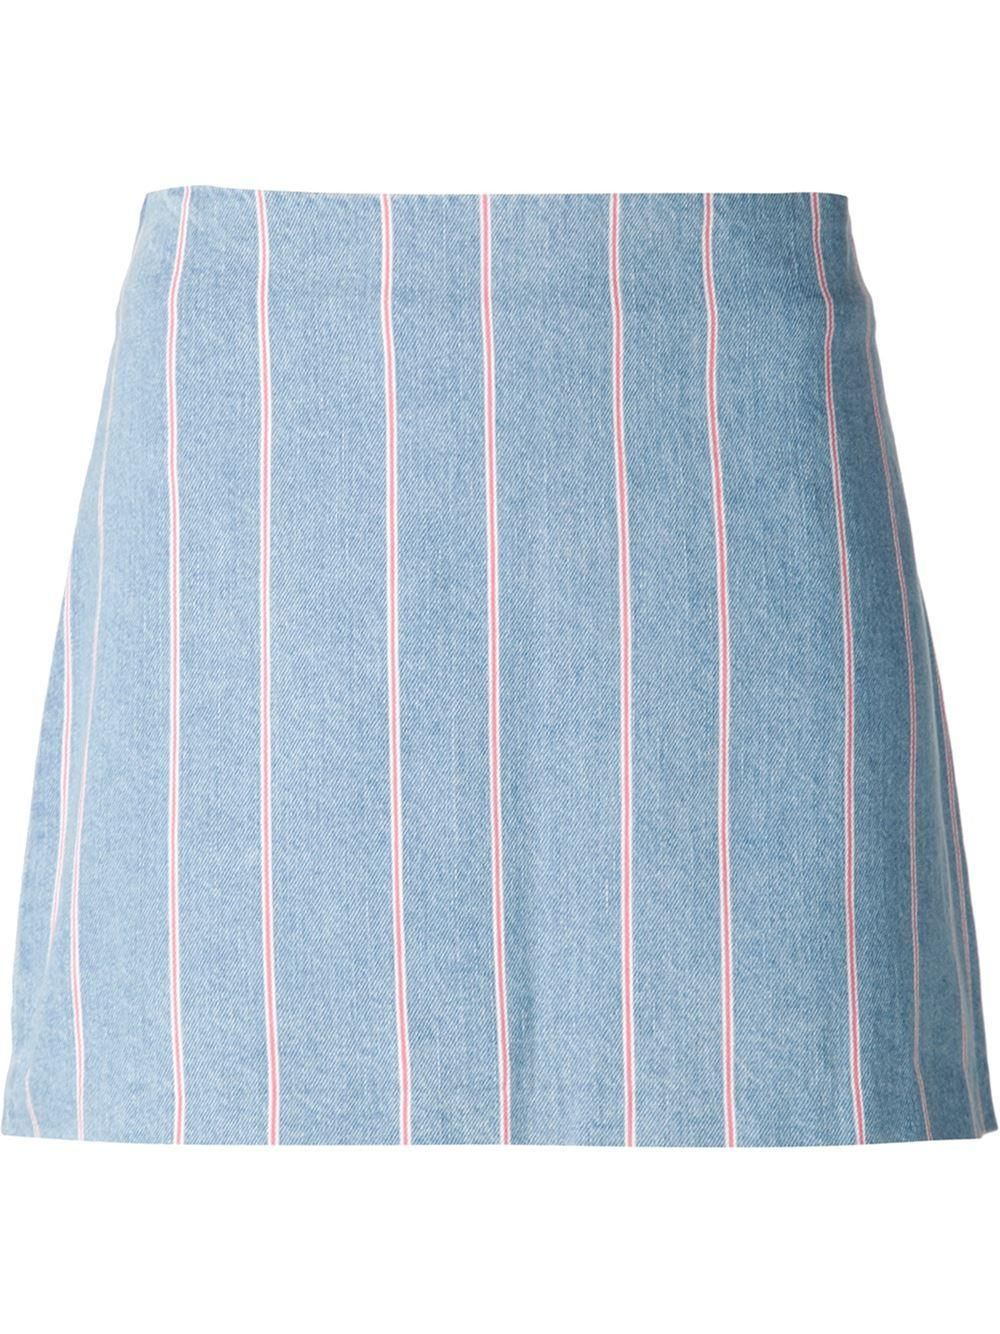 From summer to back to school, the A line skirt is the perfect flirty fashion must-have.